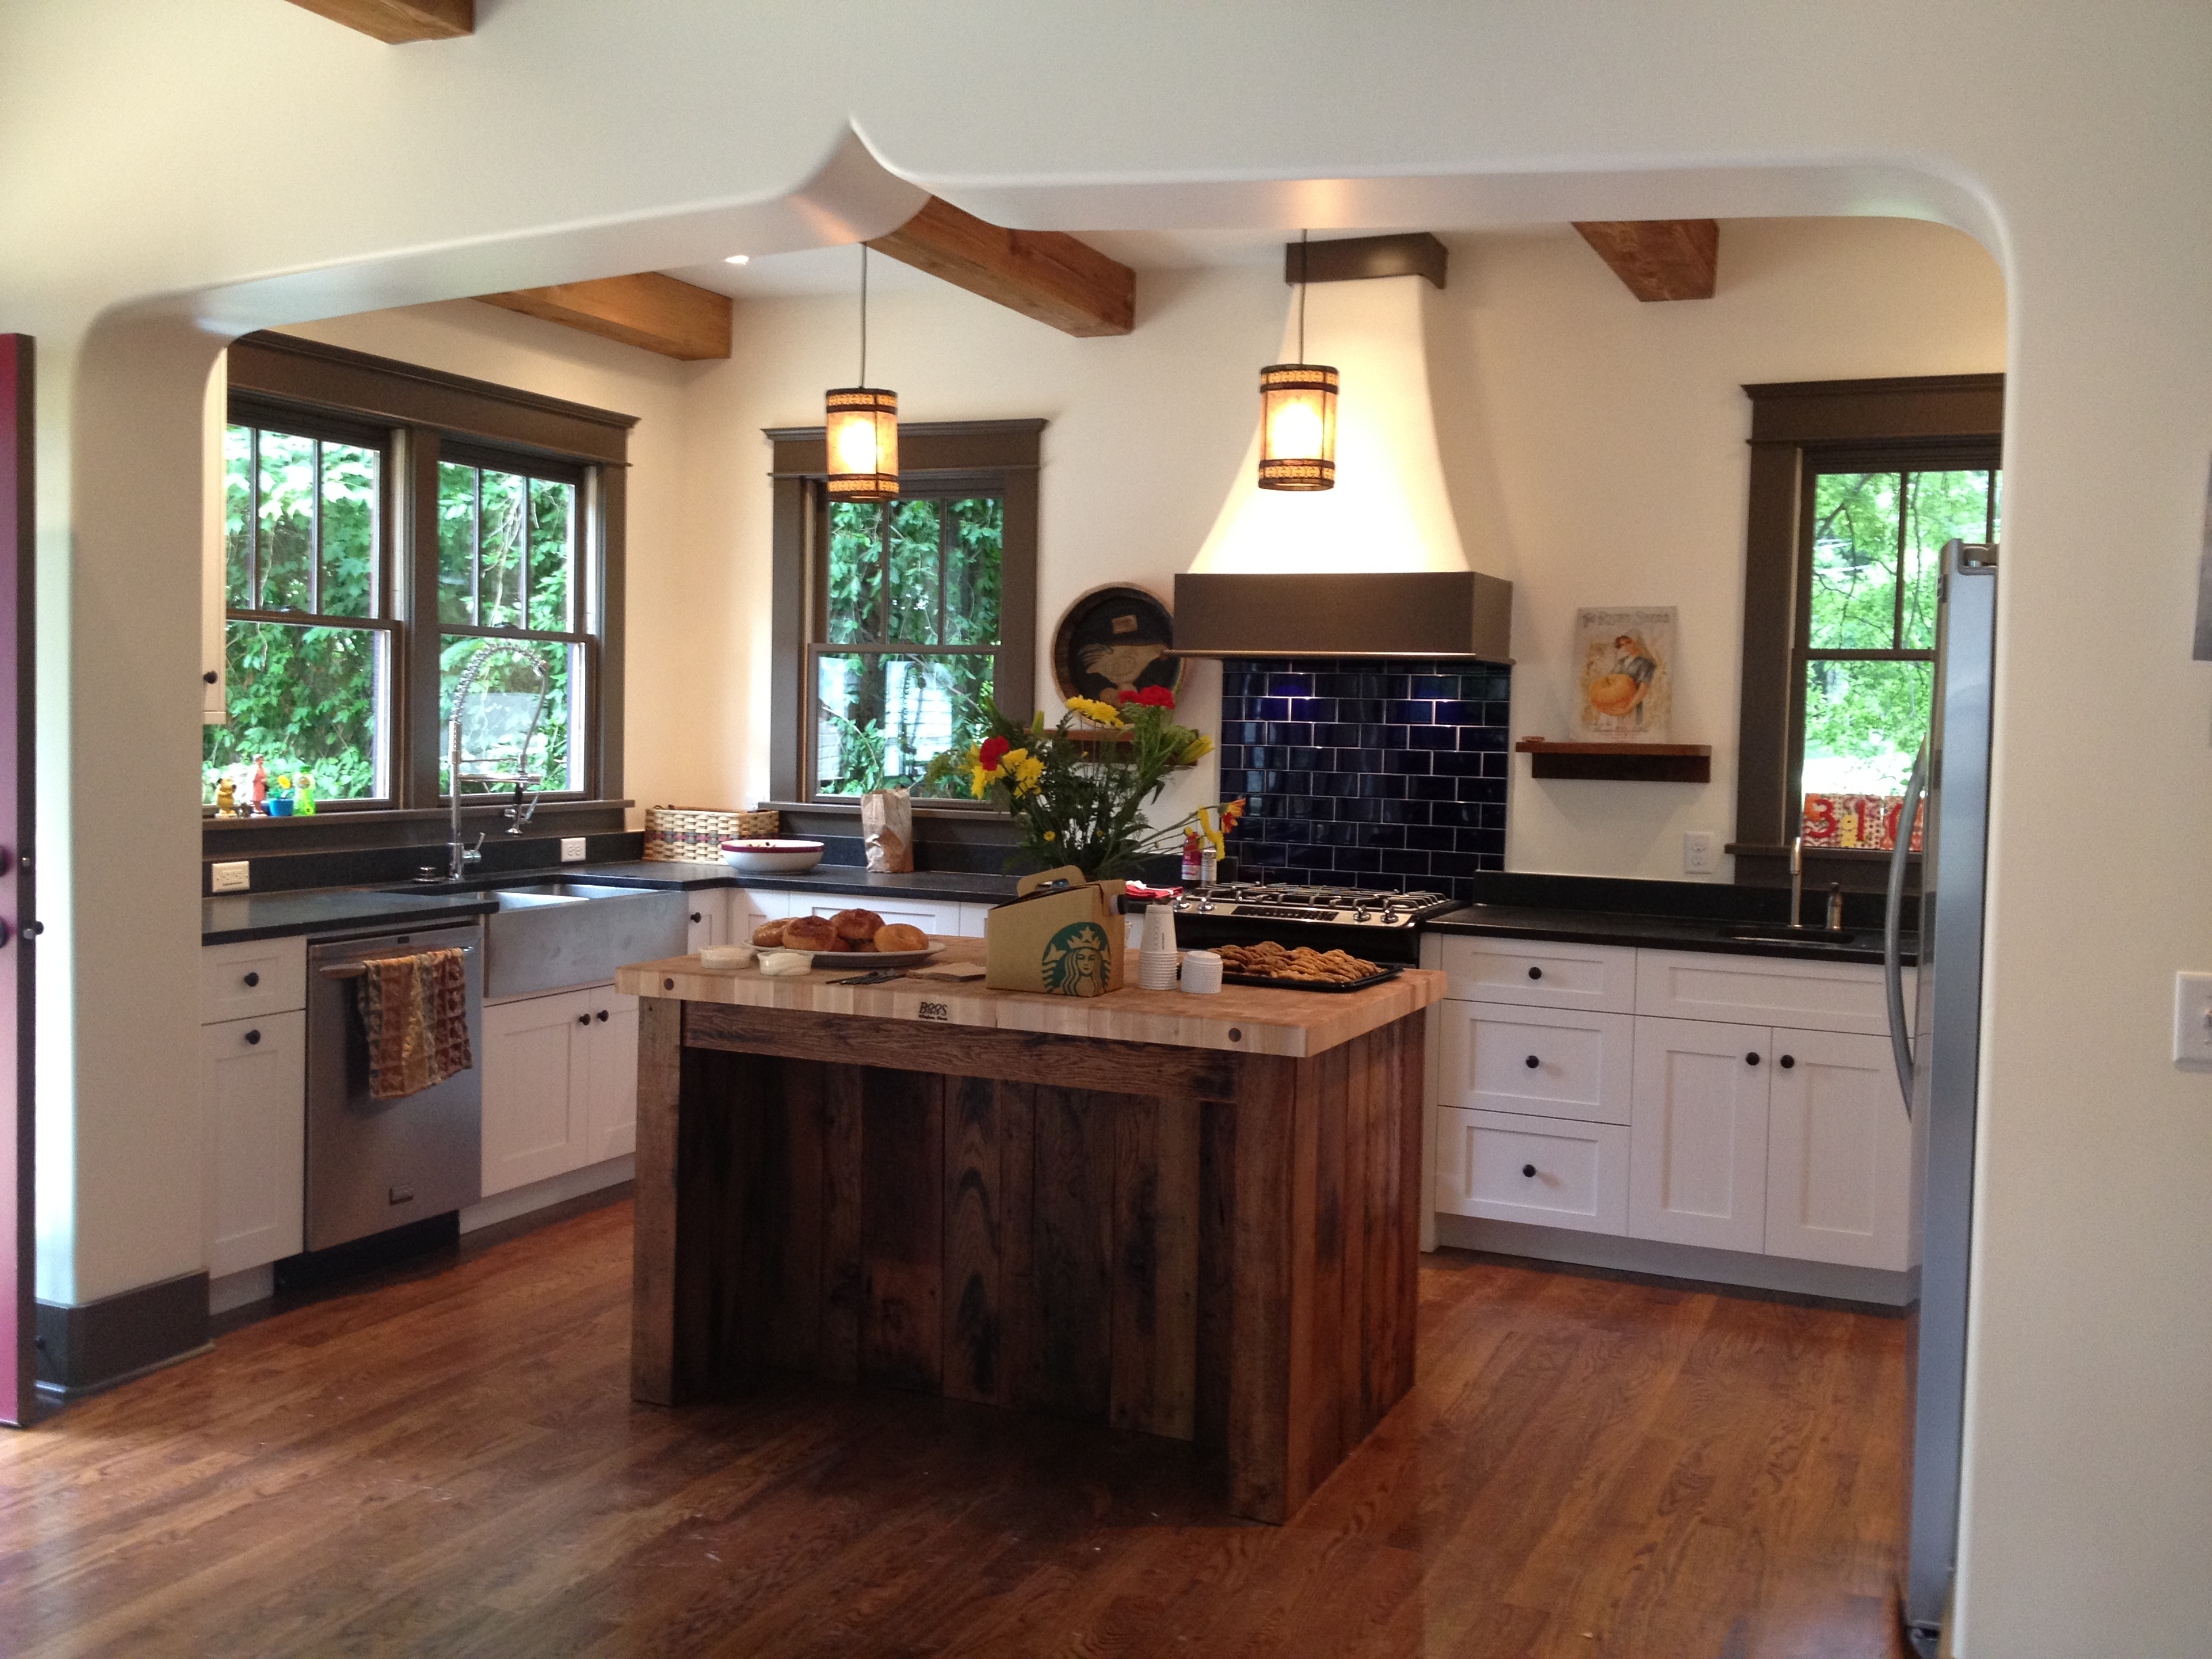 Classy Reclaimed Wood Island Kitchen Reclaimed Wood Island Marcelle Guilbeau Rustic Reclaimed Wood Kitchen Island Rustic Wood Island Kitchen kitchen Rustic Wood Island